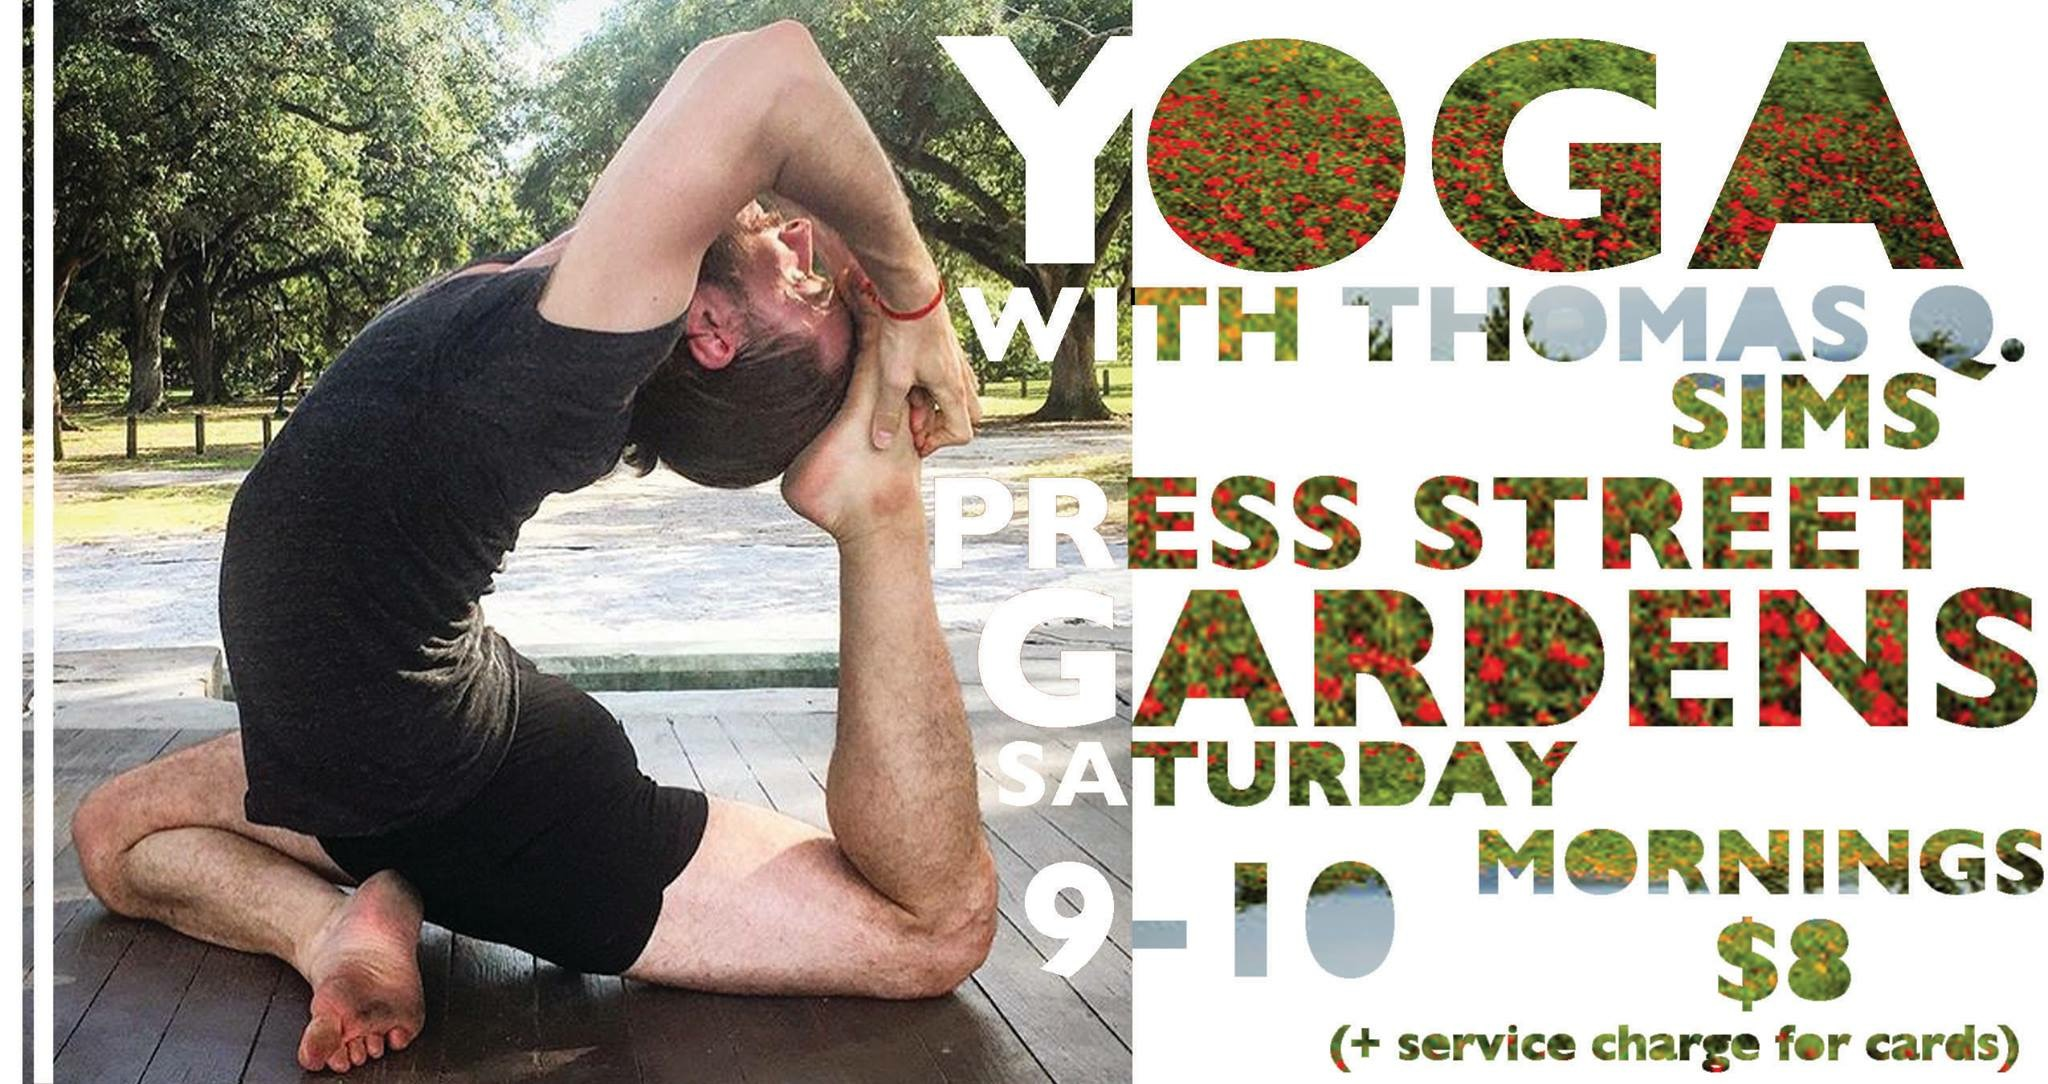 Saturday Mornings In Press Street Gardens: Yoga With Thomas Q. Sims